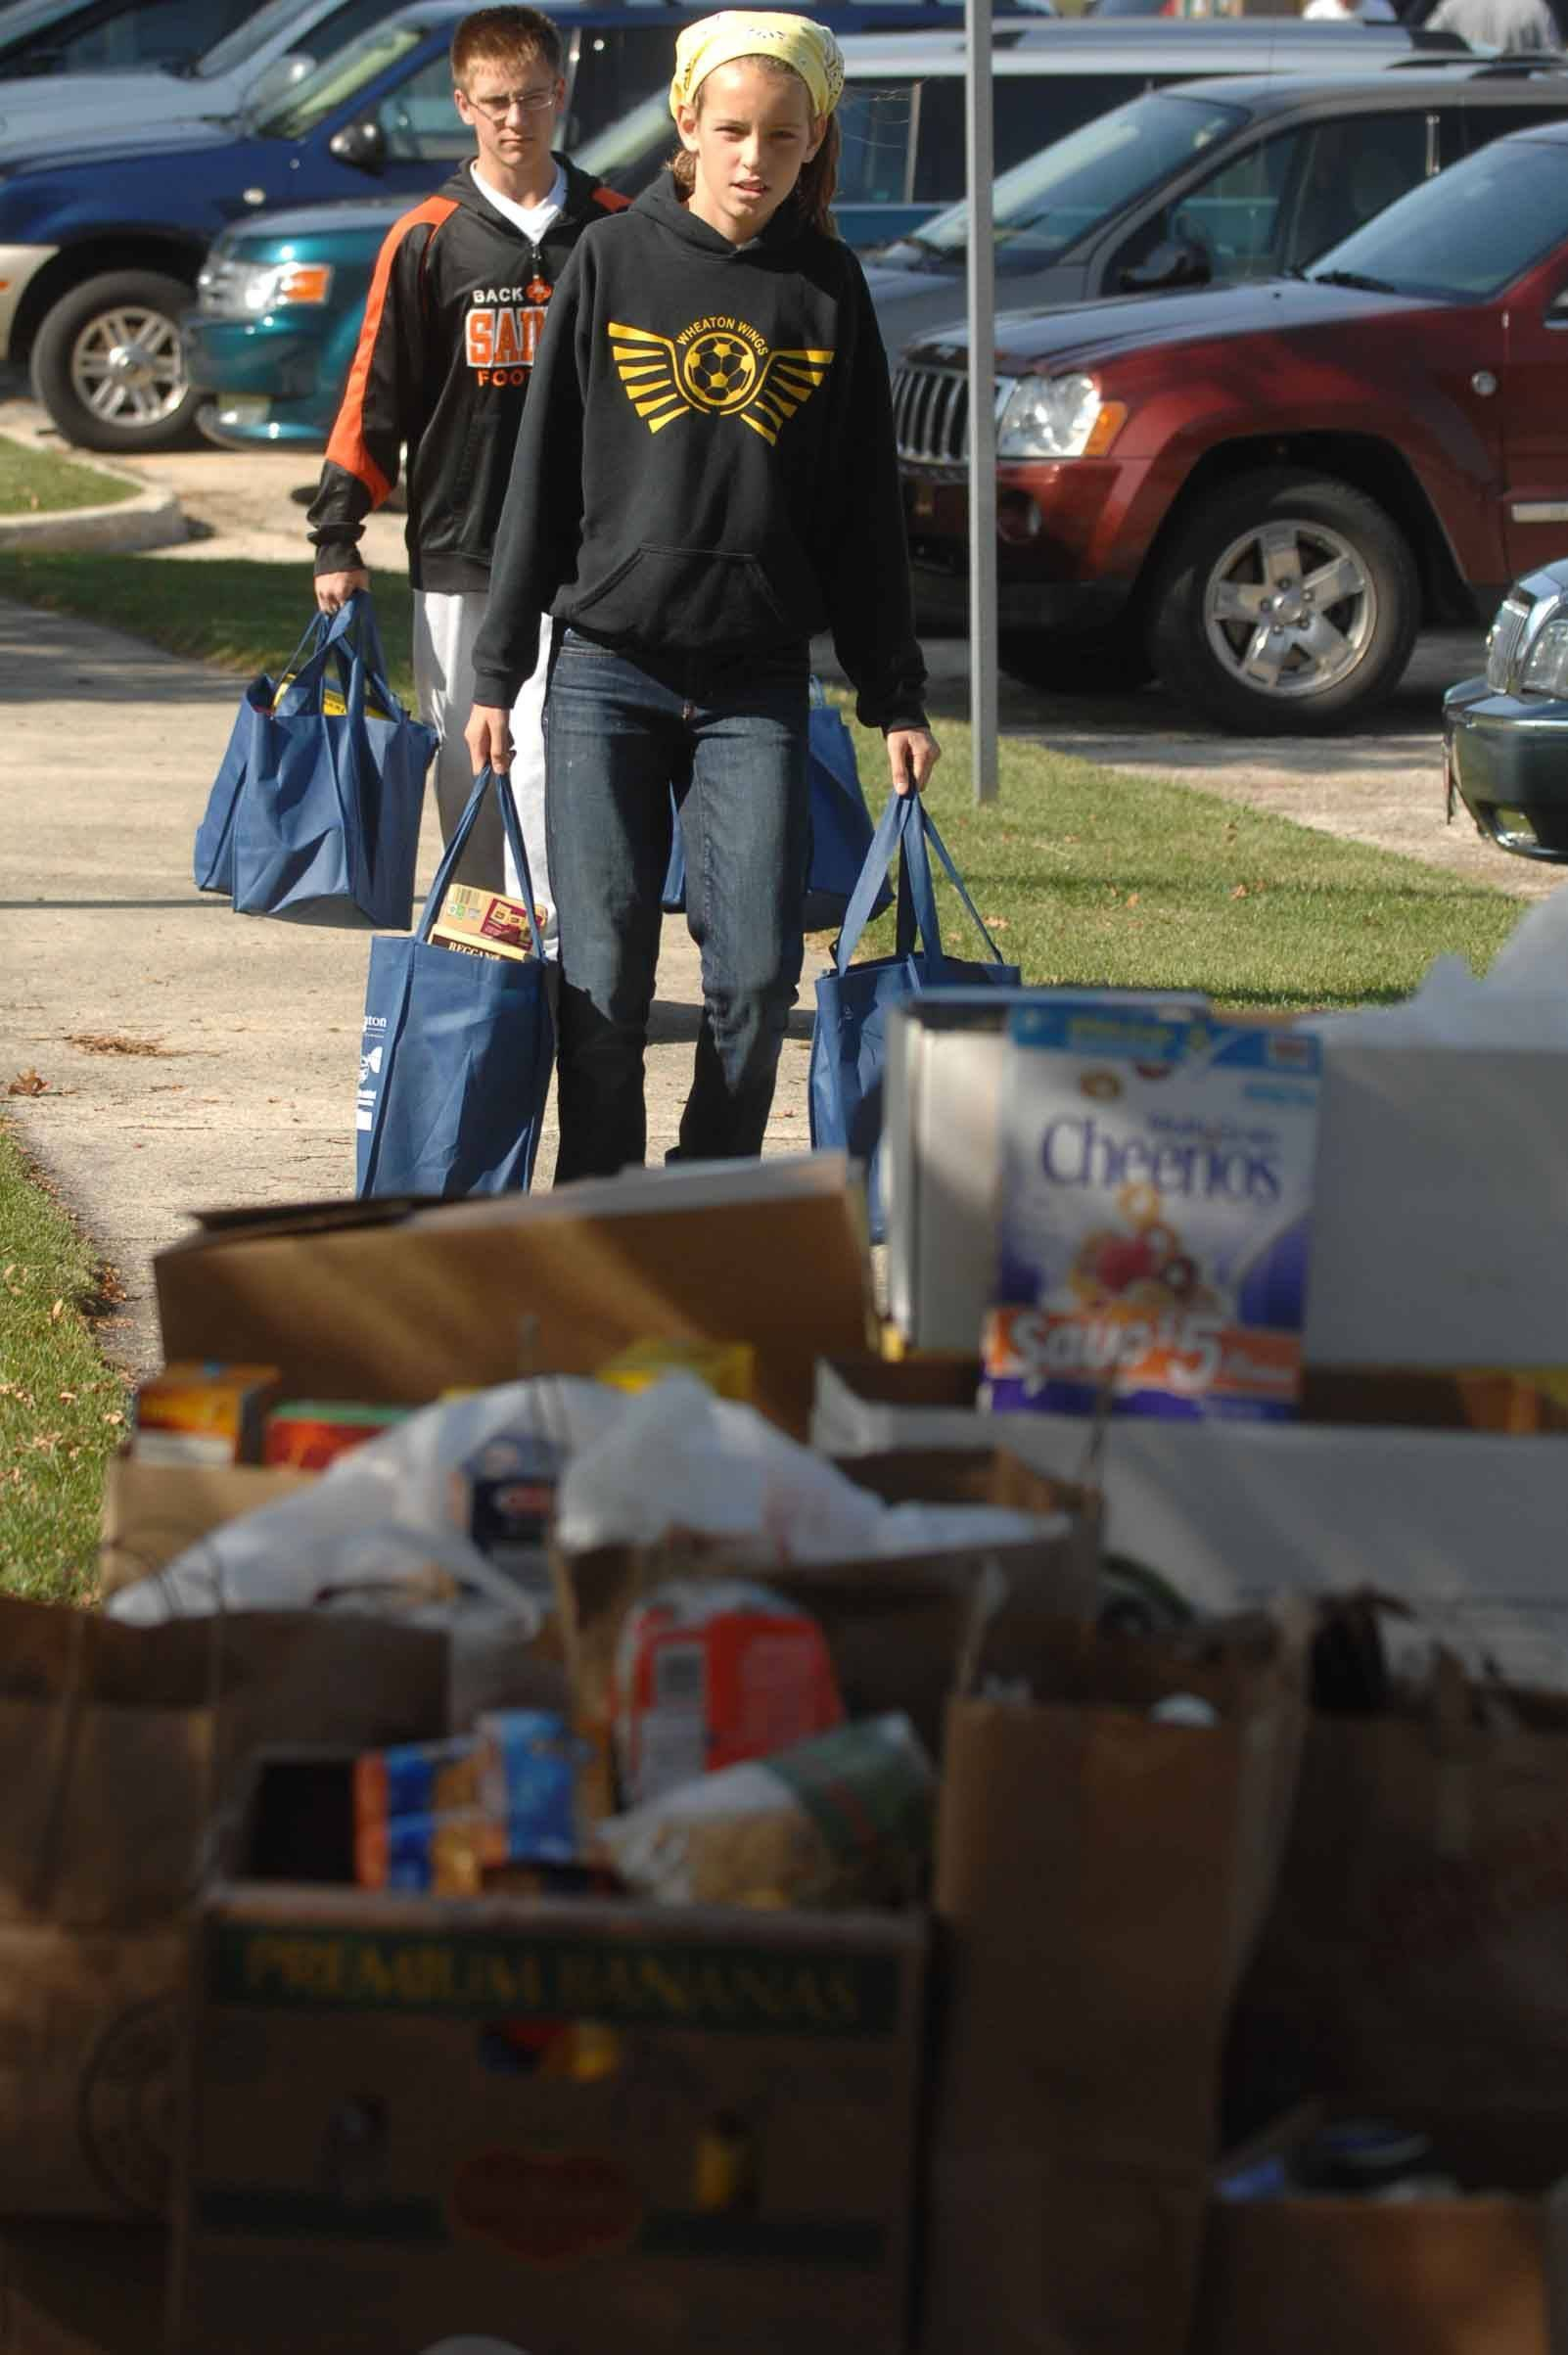 Shannon Moran, 11, carries bags of food to be donated to People's Resource Center during the Make a Difference Day Stuff a Truck with Food drive Saturday in Wheaton.